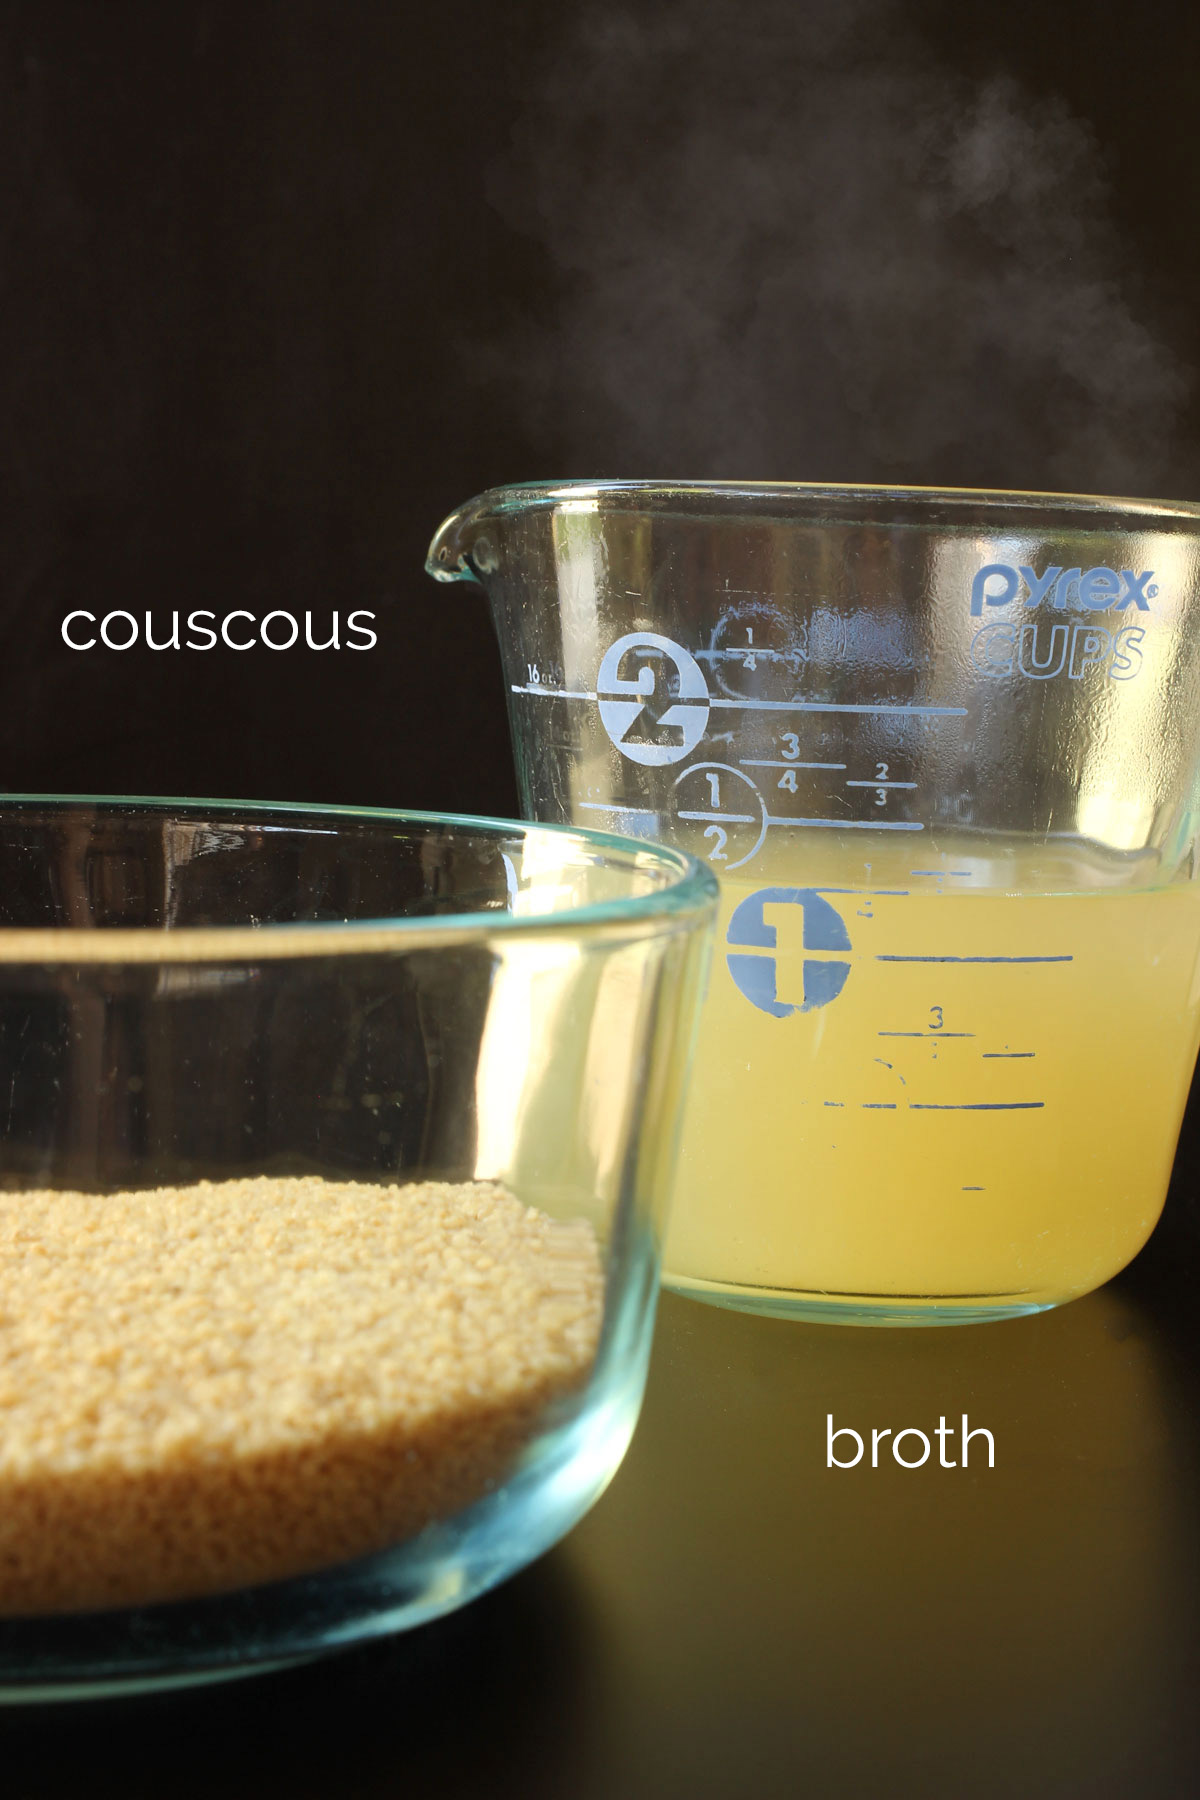 couscous in a glass dish next to hot chicken broth in a glass measuring cup.